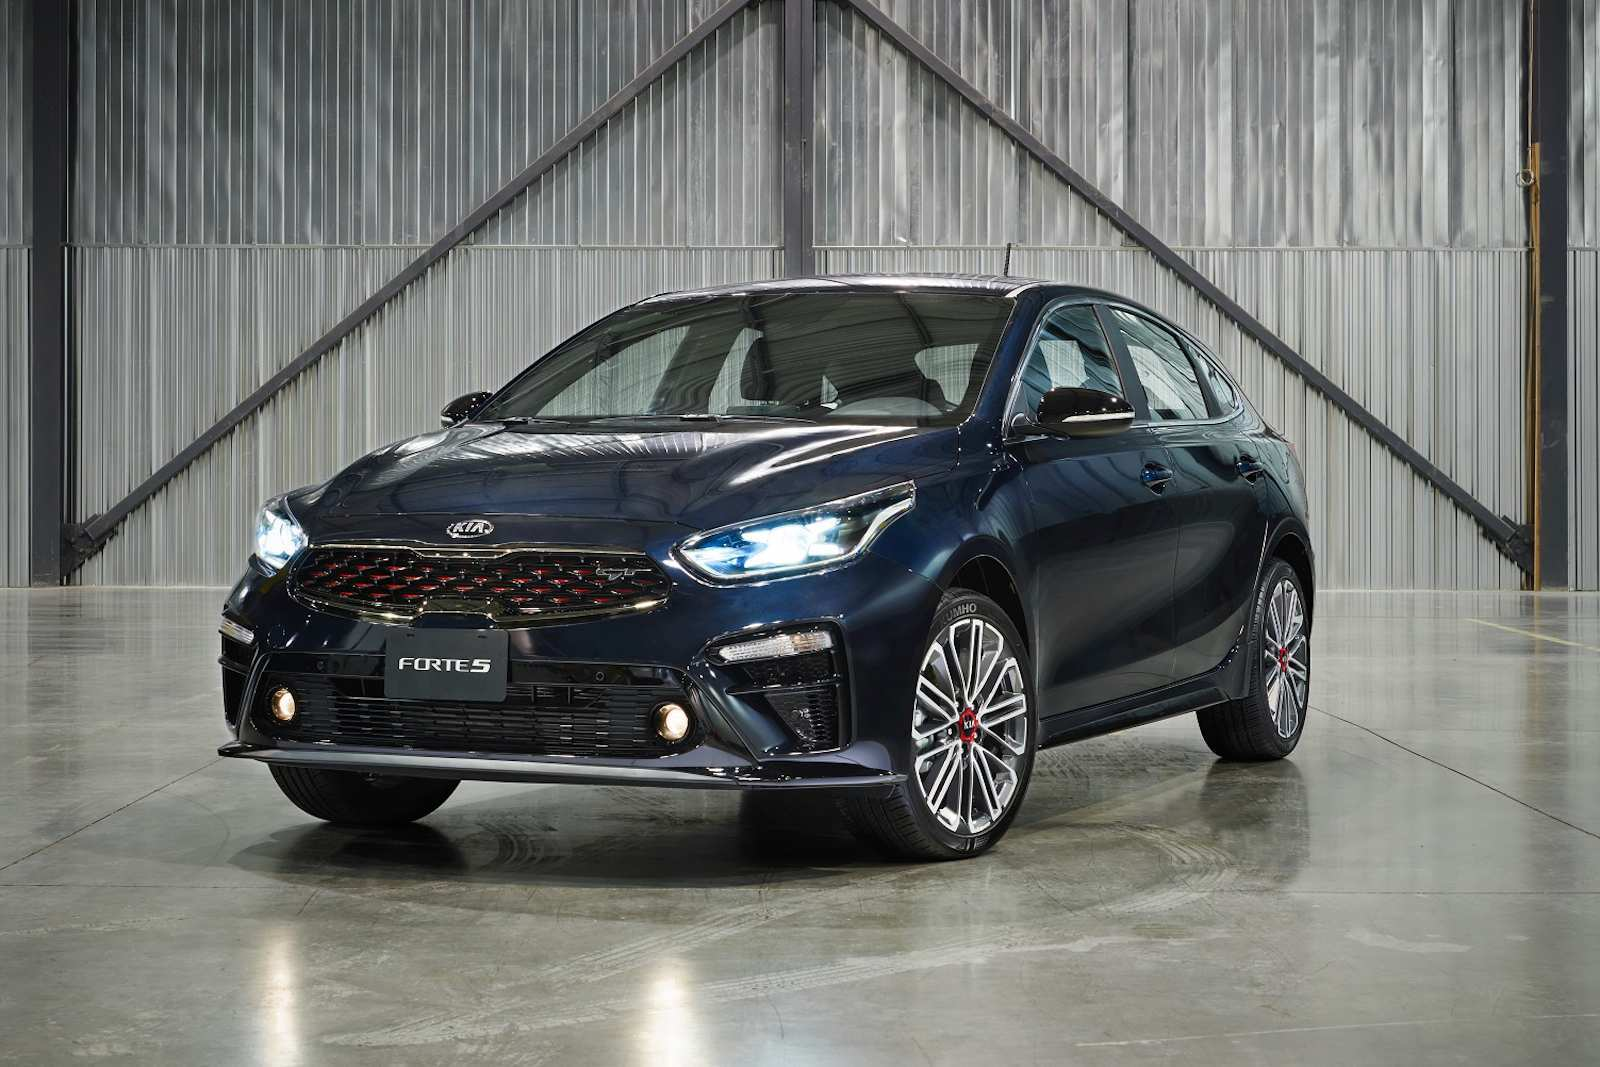 82 The 2020 Kia Forte5 Hatchback Exterior and Interior by 2020 Kia Forte5 Hatchback